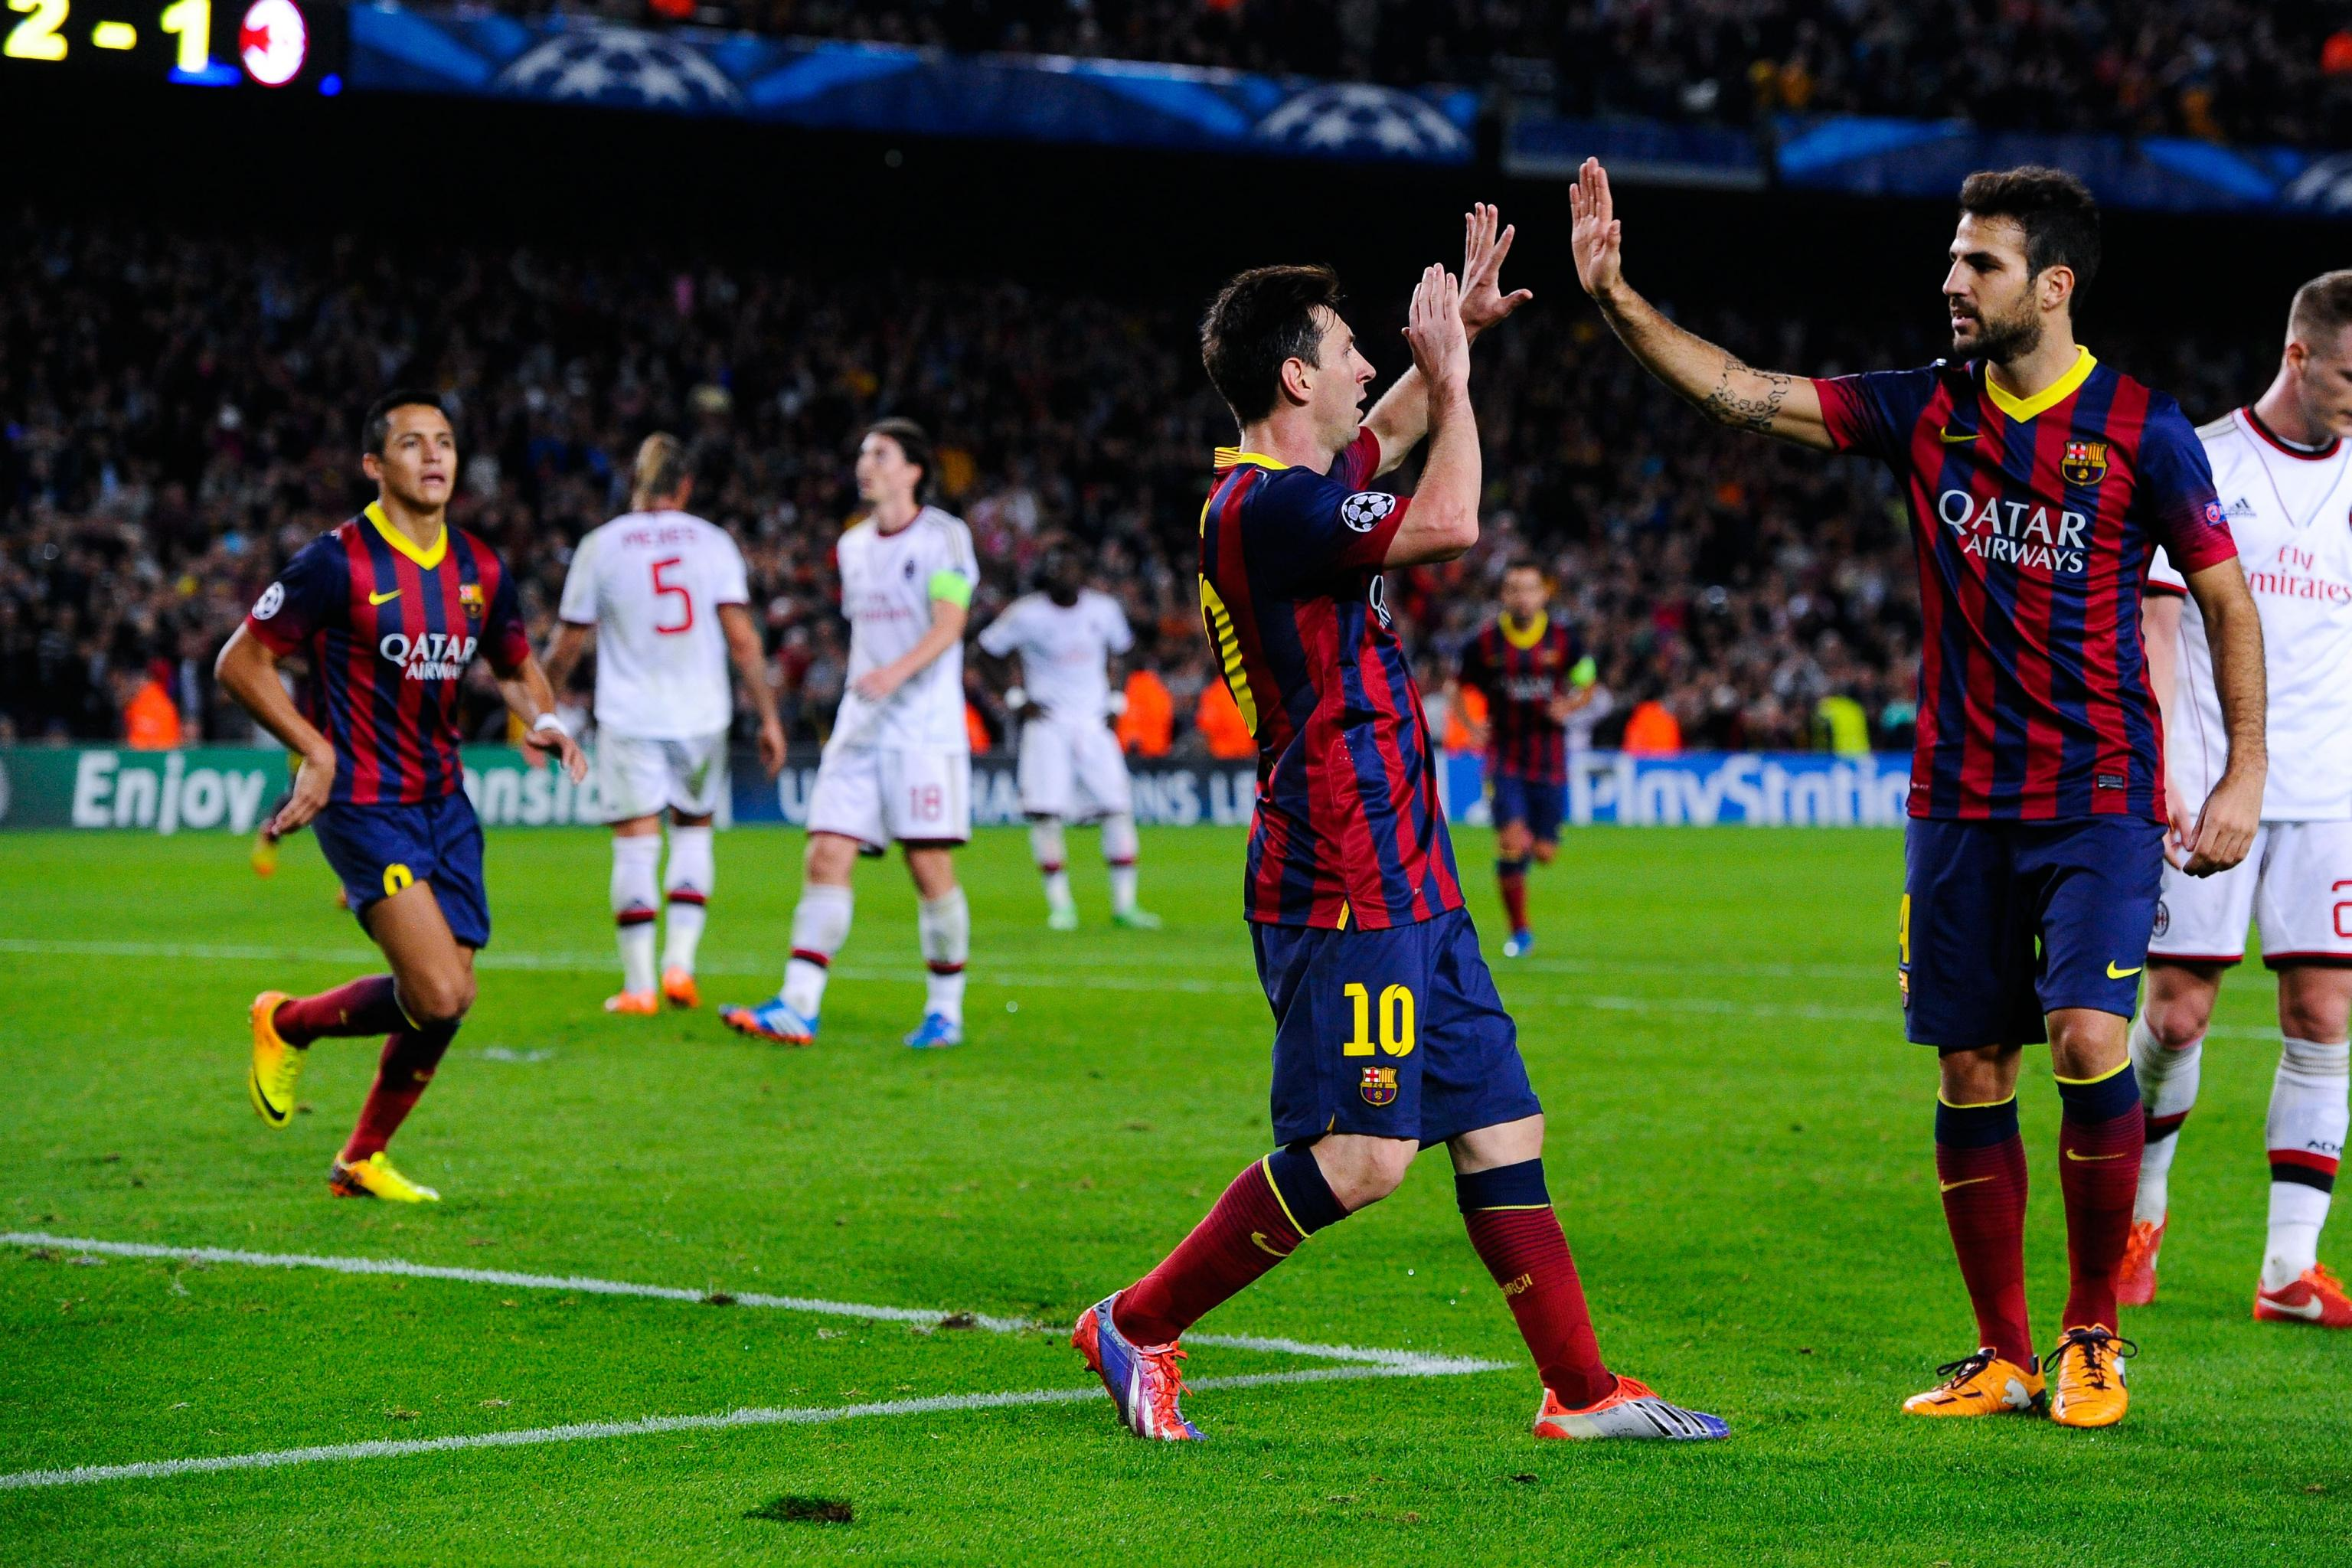 Barcelona Vs Ac Milan Live Player Ratings For Barca Bleacher Report Latest News Videos And Highlights